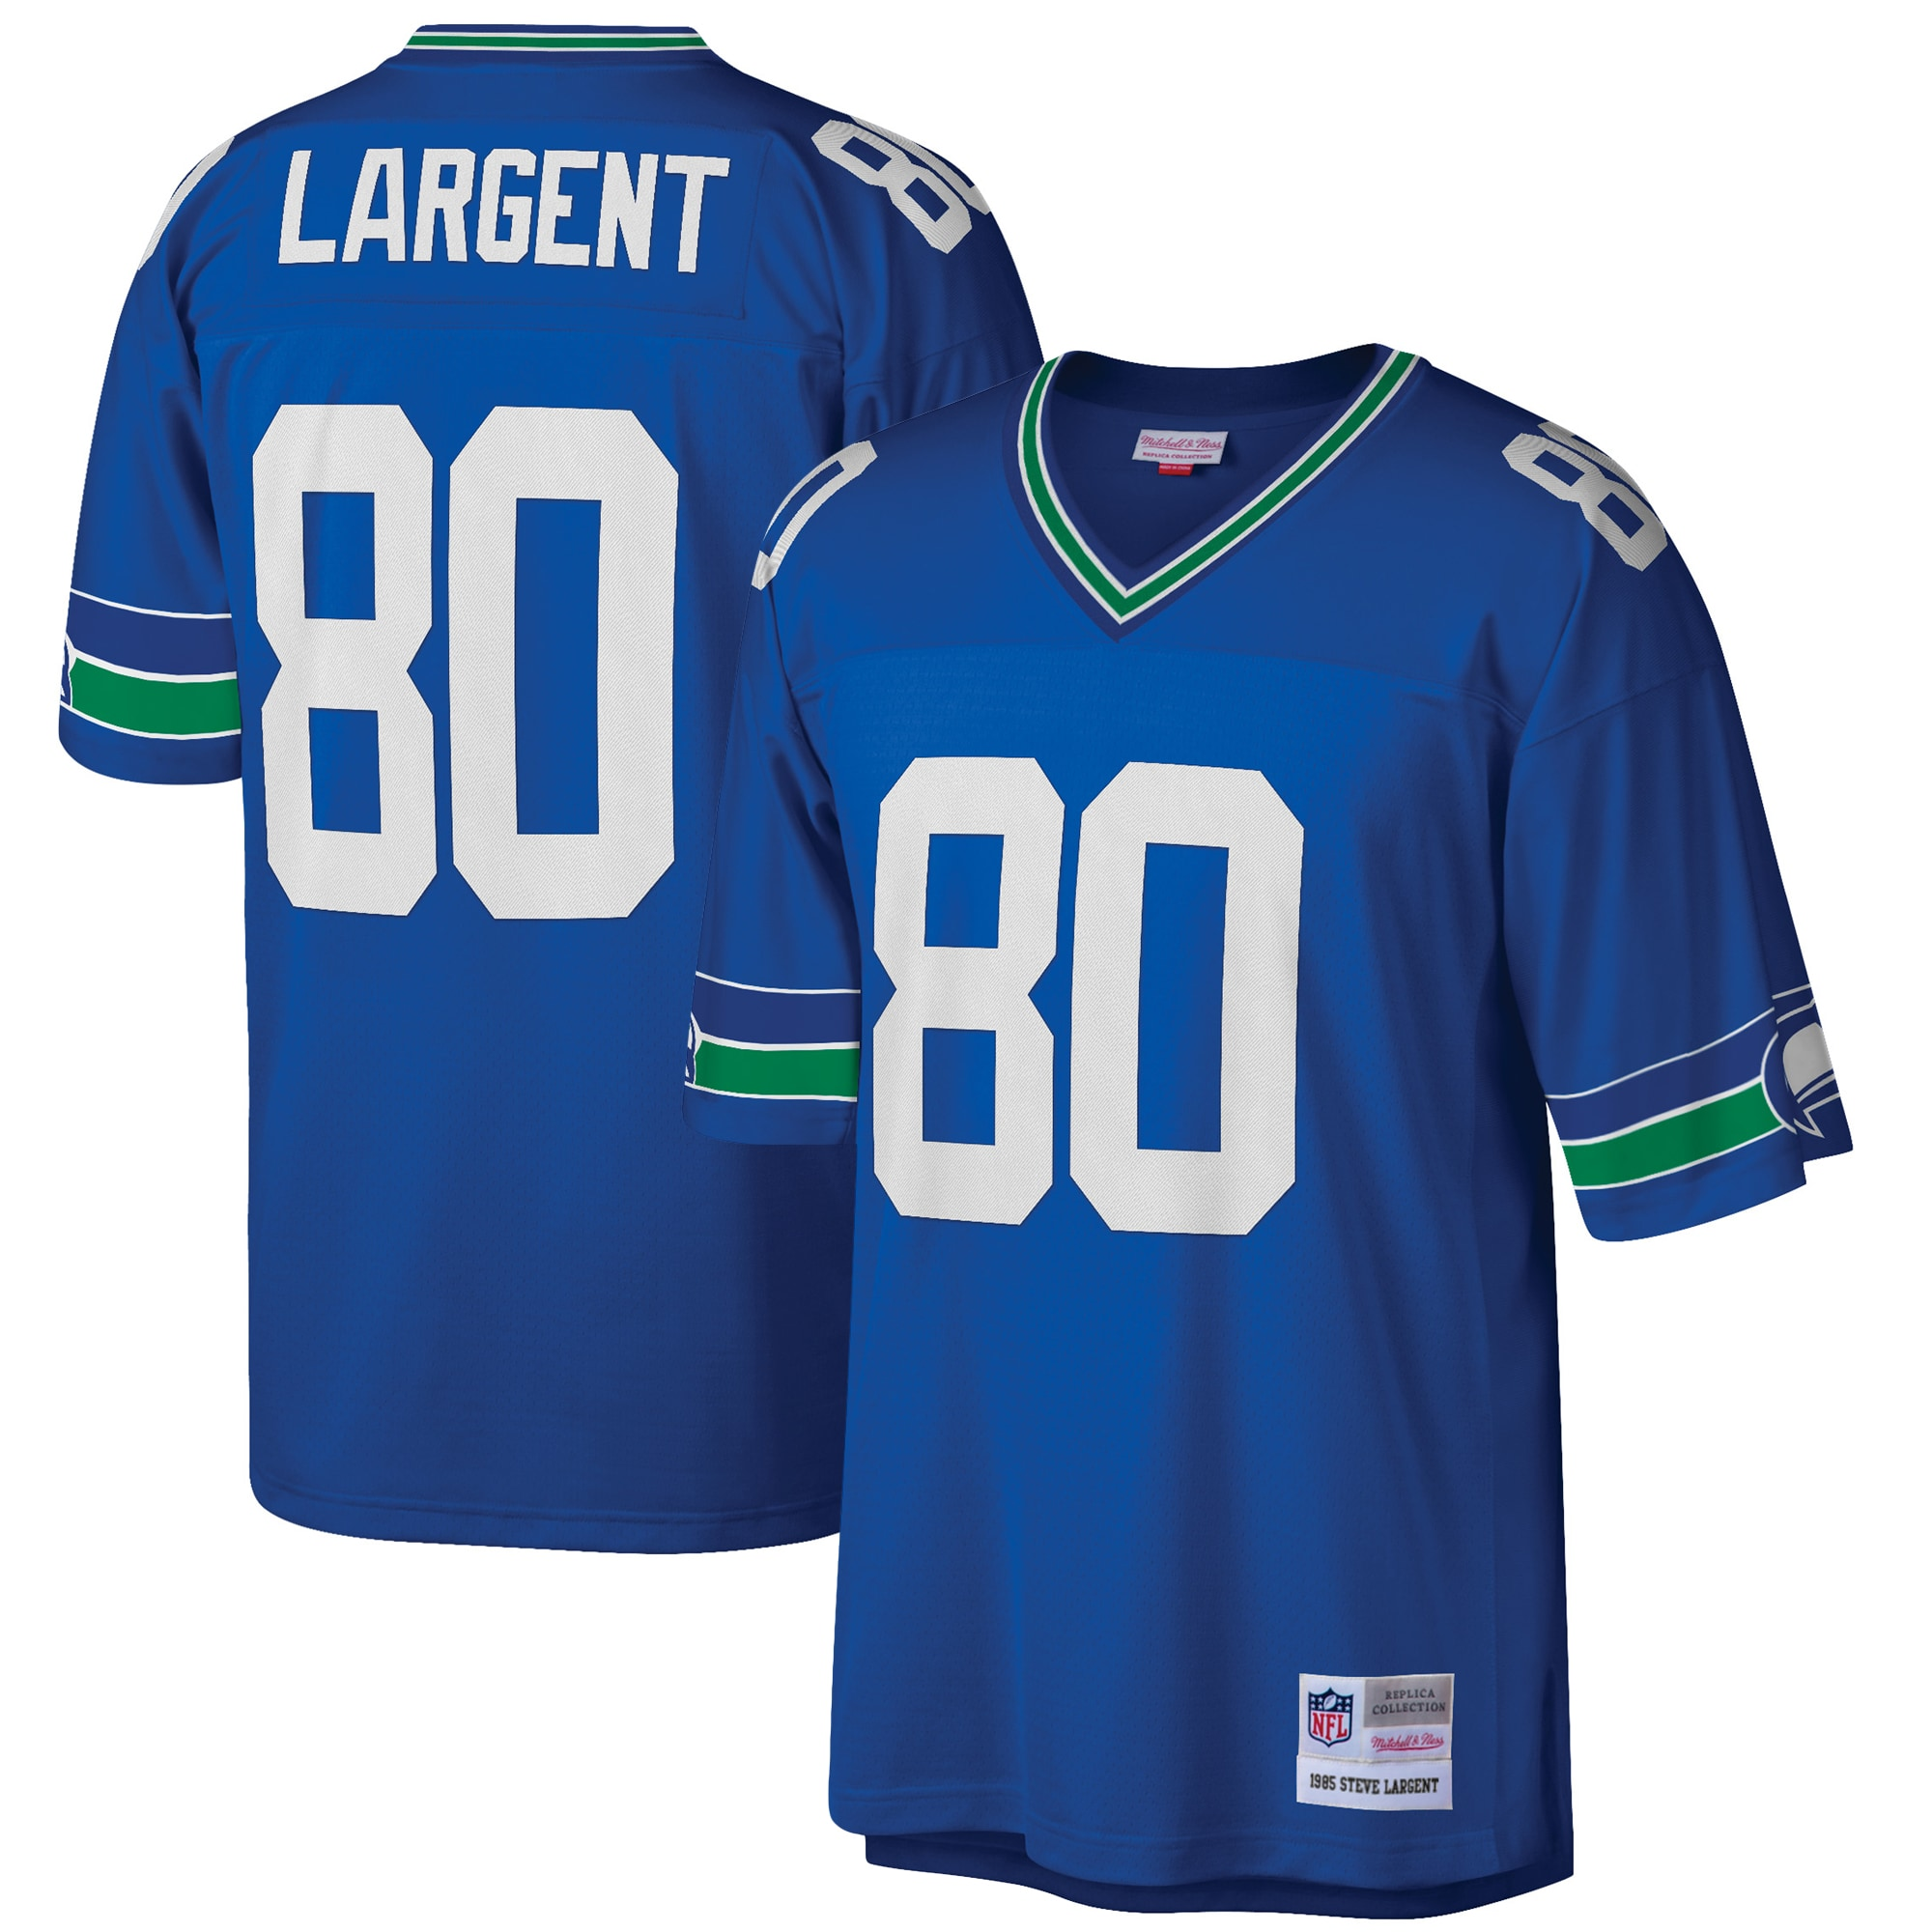 Steve Largent Seattle Seahawks Mitchell & Ness Retired Player Legacy Replica Jersey - Blue